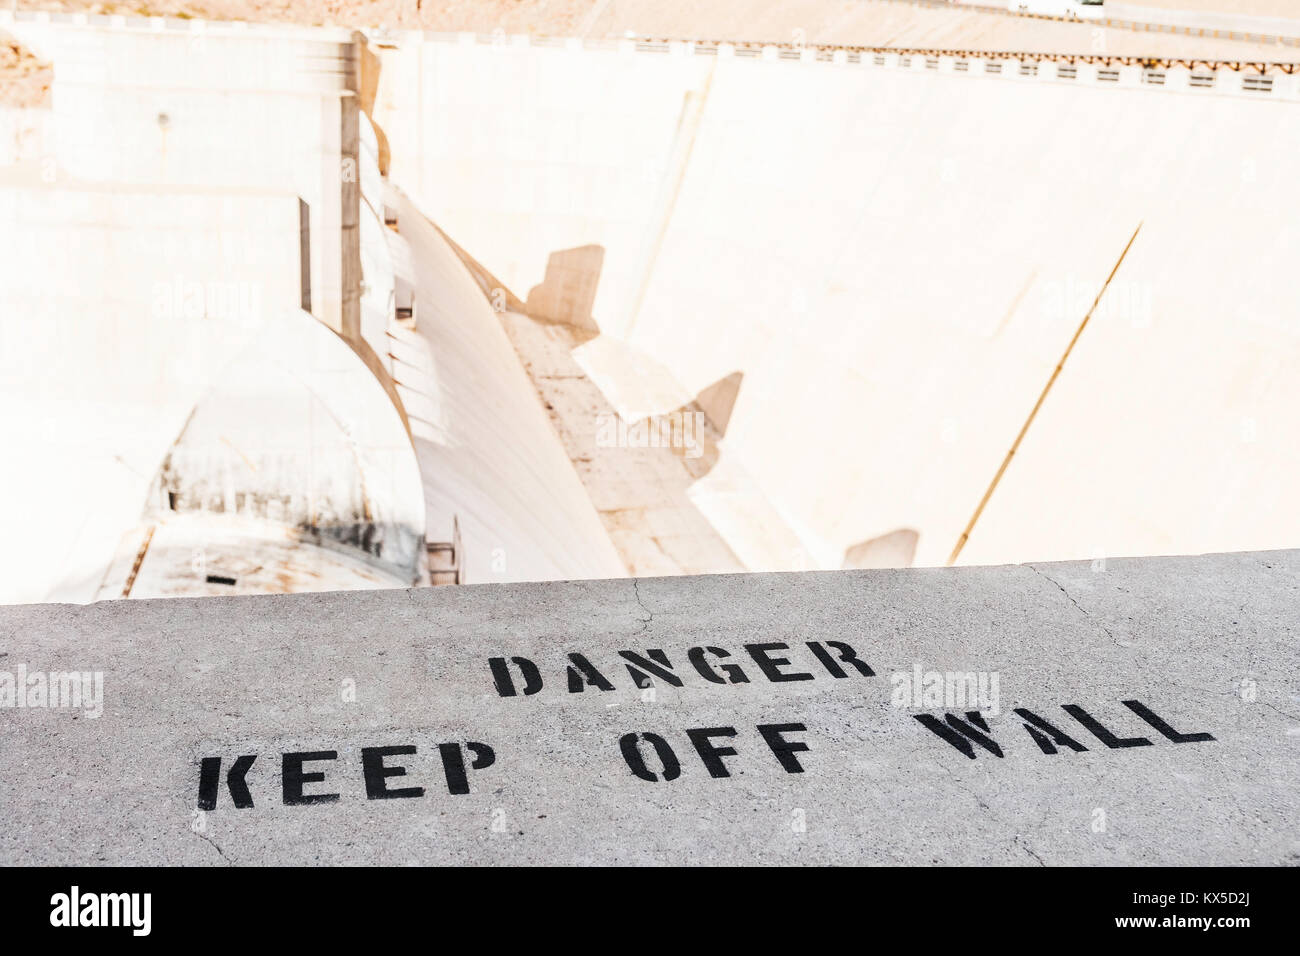 Warning information stencil on a wall at the Hoover dam, Nevada, usa. - Stock Image